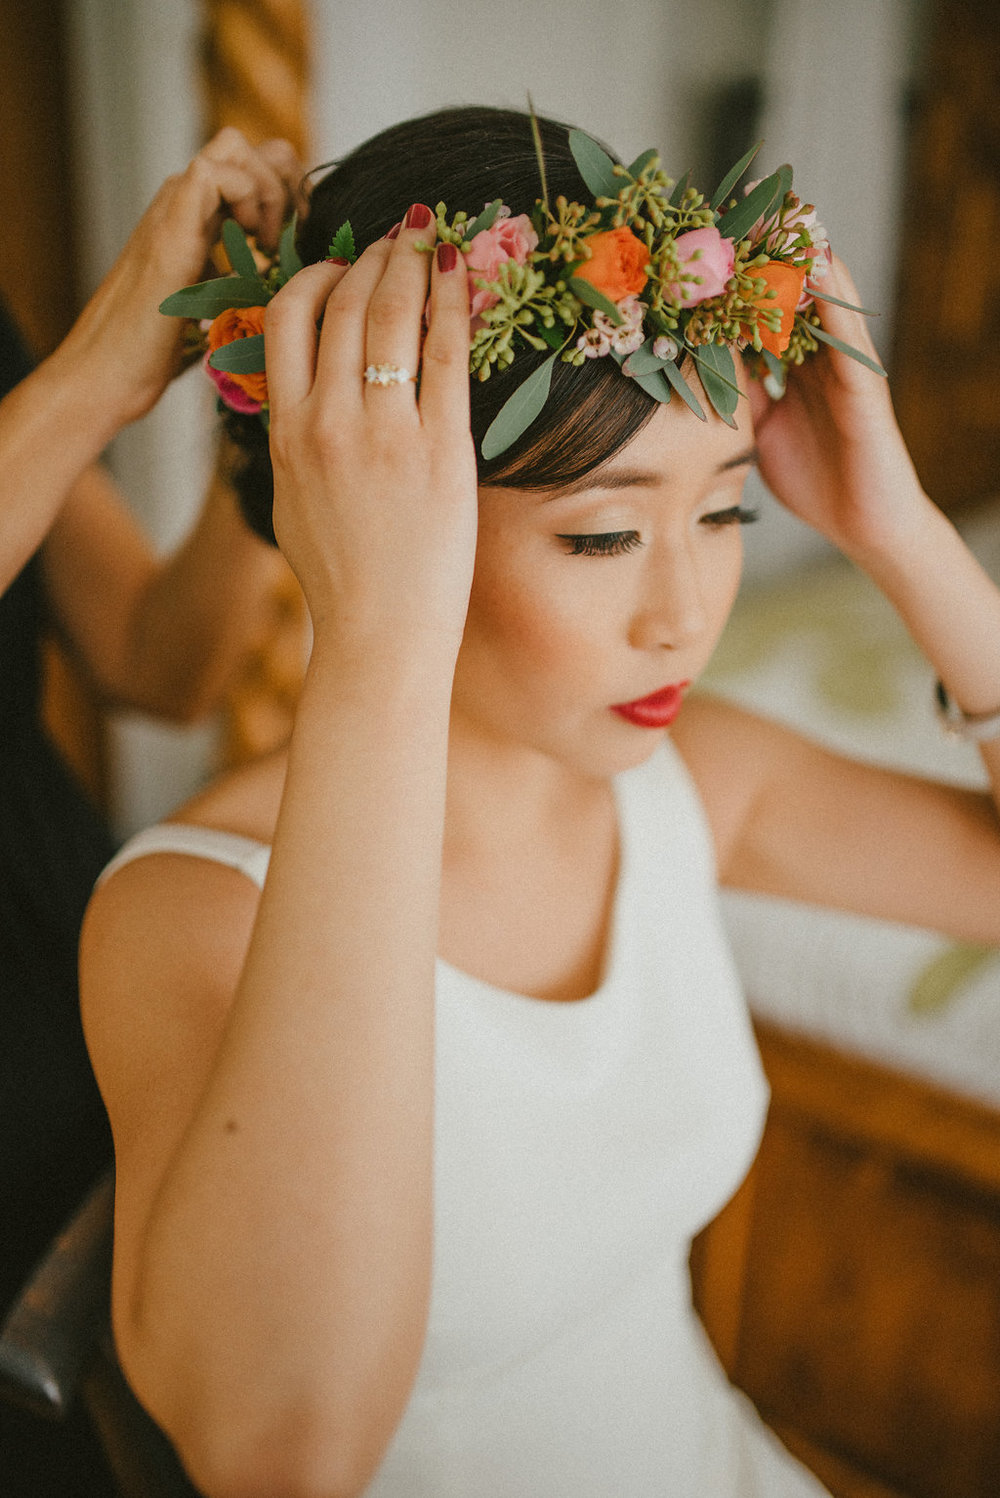 Loulu-Palm-Estate-Haleiwa-Hawaii-San-Francisco-Wedding-Makeup-Wedding-Hair-Blush-Makeup-and-Hair-Chelsea-Abril-Photography